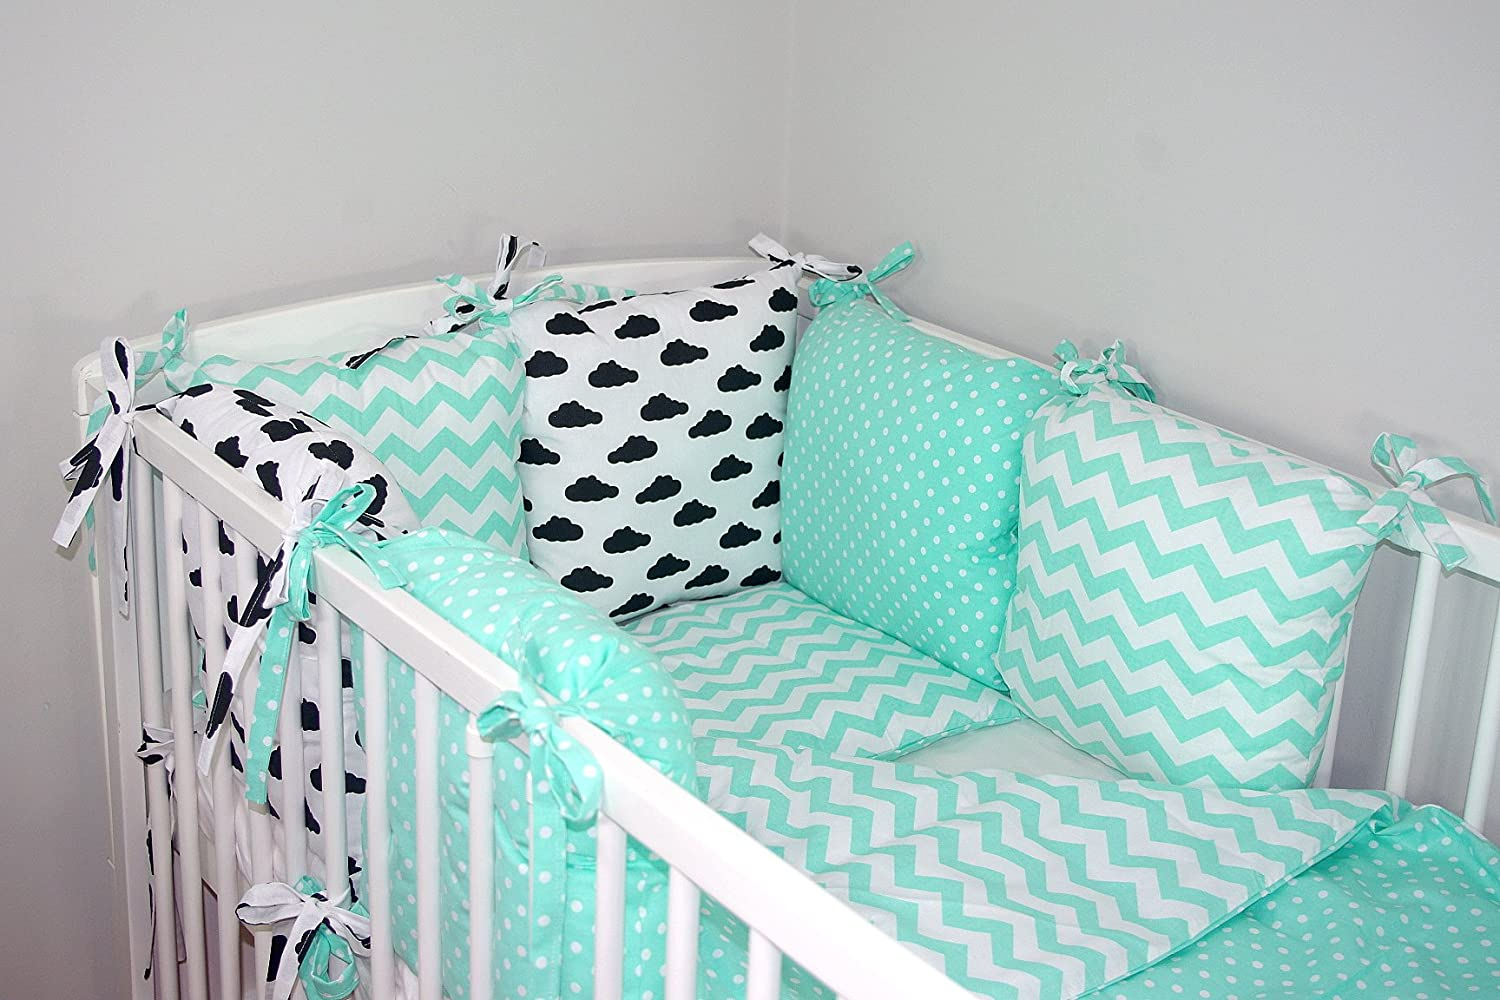 NEW 8 PCS BABY BEDDING SET FOR COT / COTBED with PILLOW BUMPER (24 NEWEST DESIGNS) (11a) Baby' s Comfort